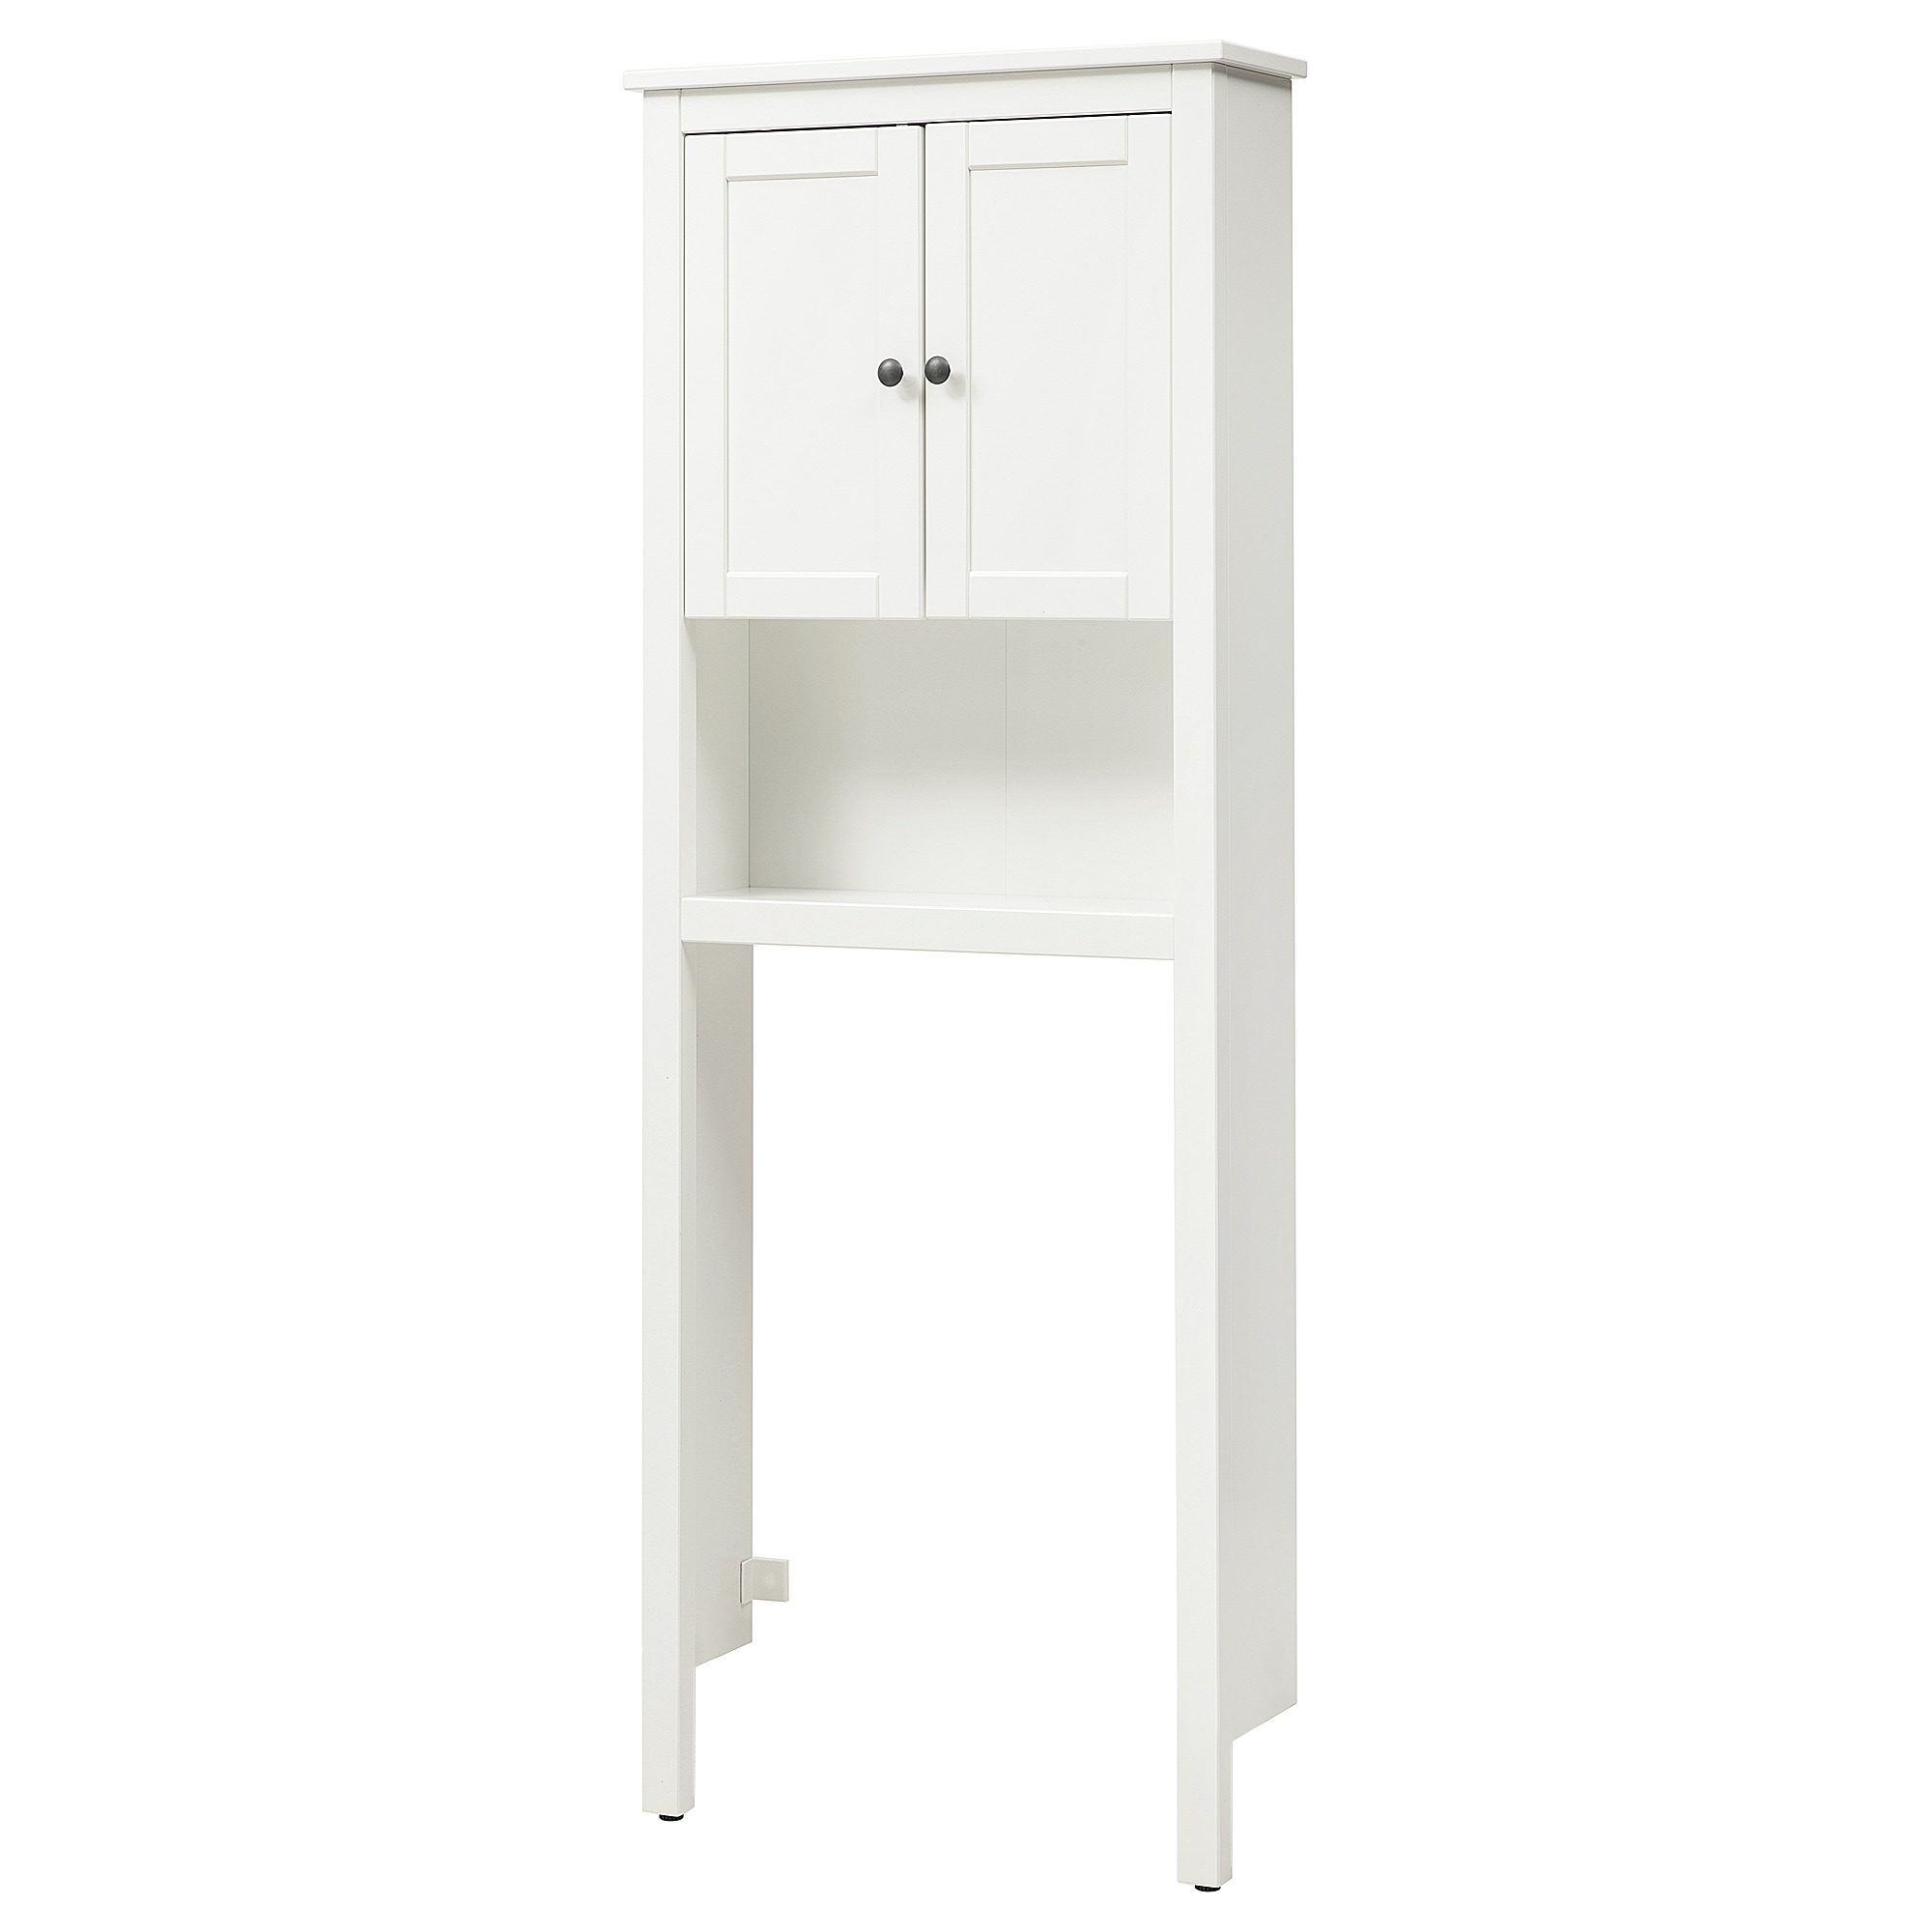 225 & Bathroom Cabinets \u0026 Linen Storage - IKEA